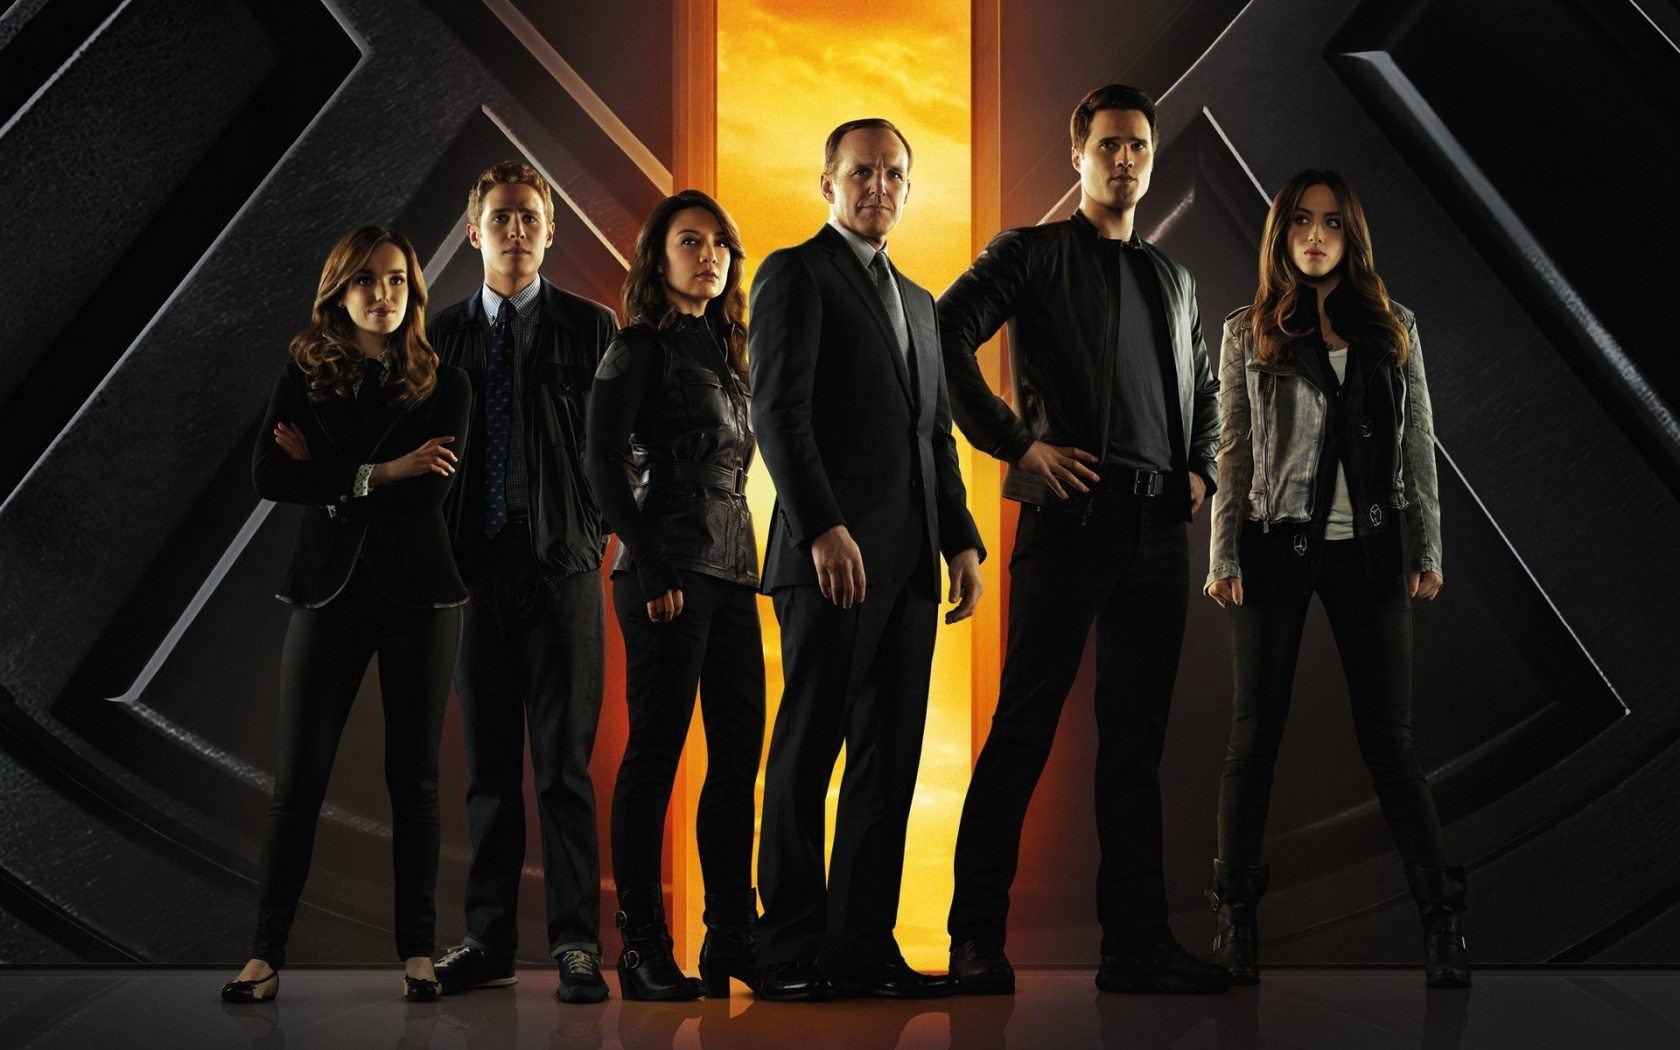 Agents of SHIELD   Agents of SHIELD Wallpaper 35640414 1680x1050